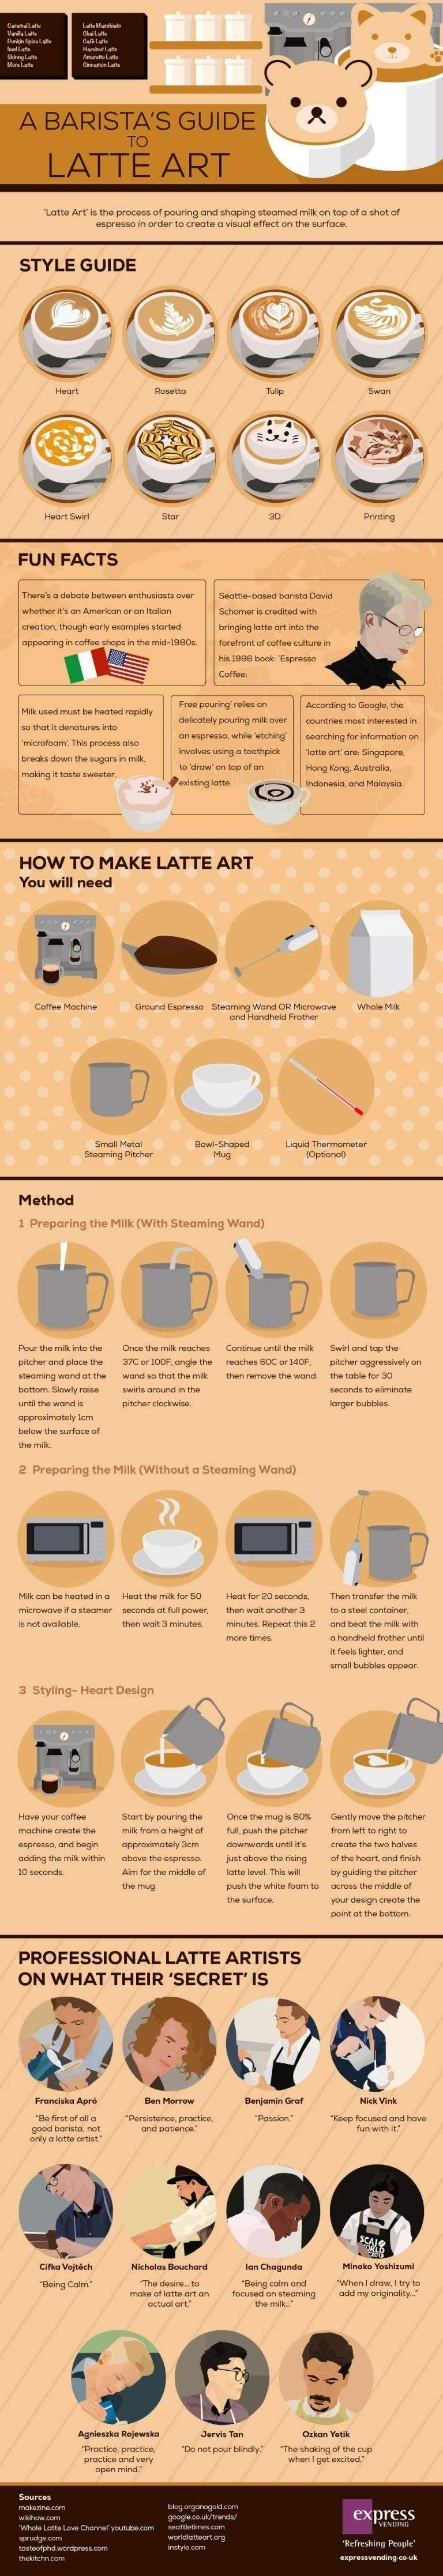 Barista's Guide to Latin Art #infographic